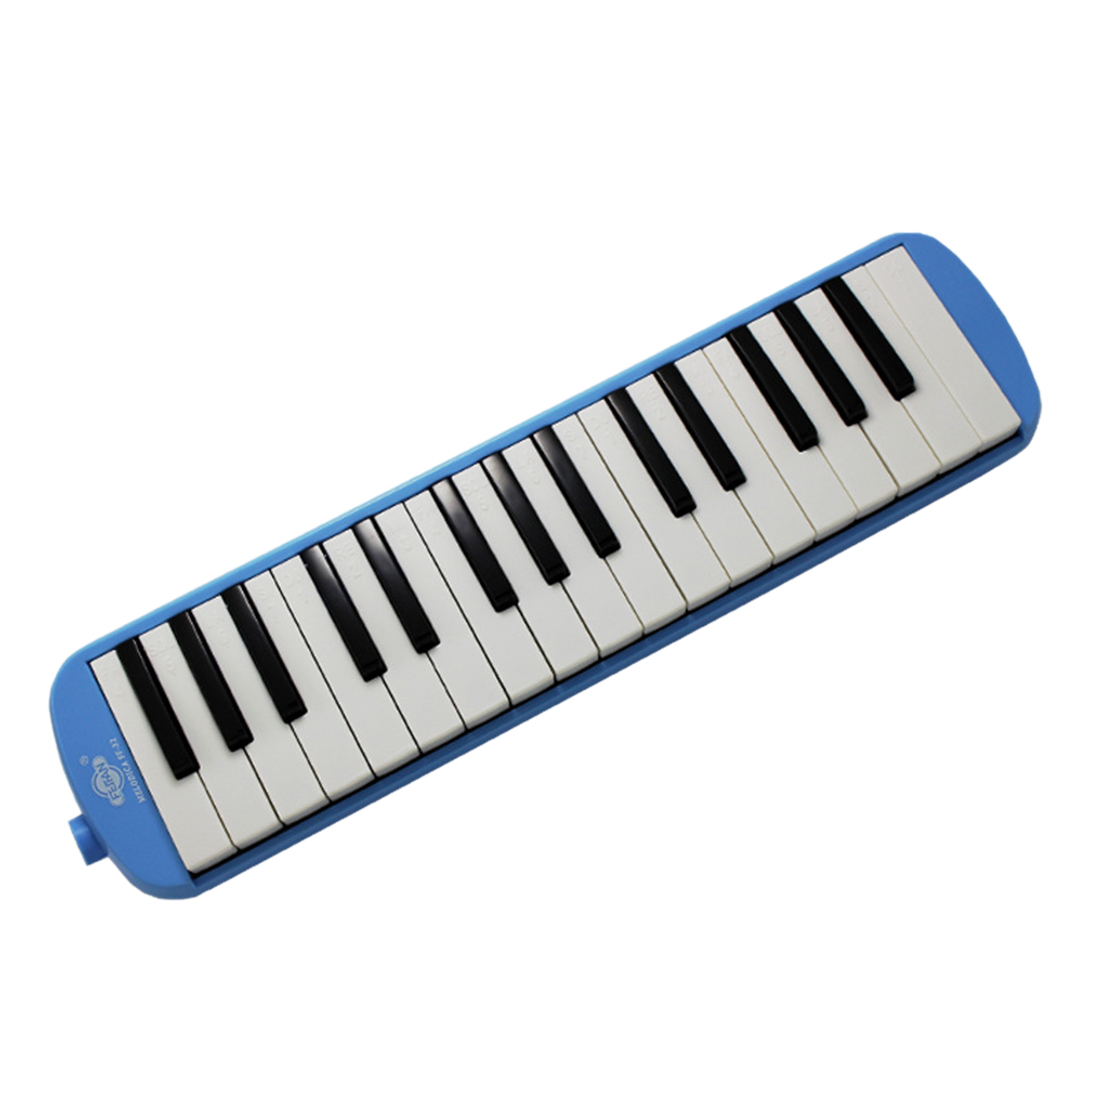 <font><b>32</b></font> <font><b>Keys</b></font> <font><b>Melodica</b></font> Piano Style Pianica Musical Educational Instrument Toys for Kids 2019 Christmas Children Gift- Blue image